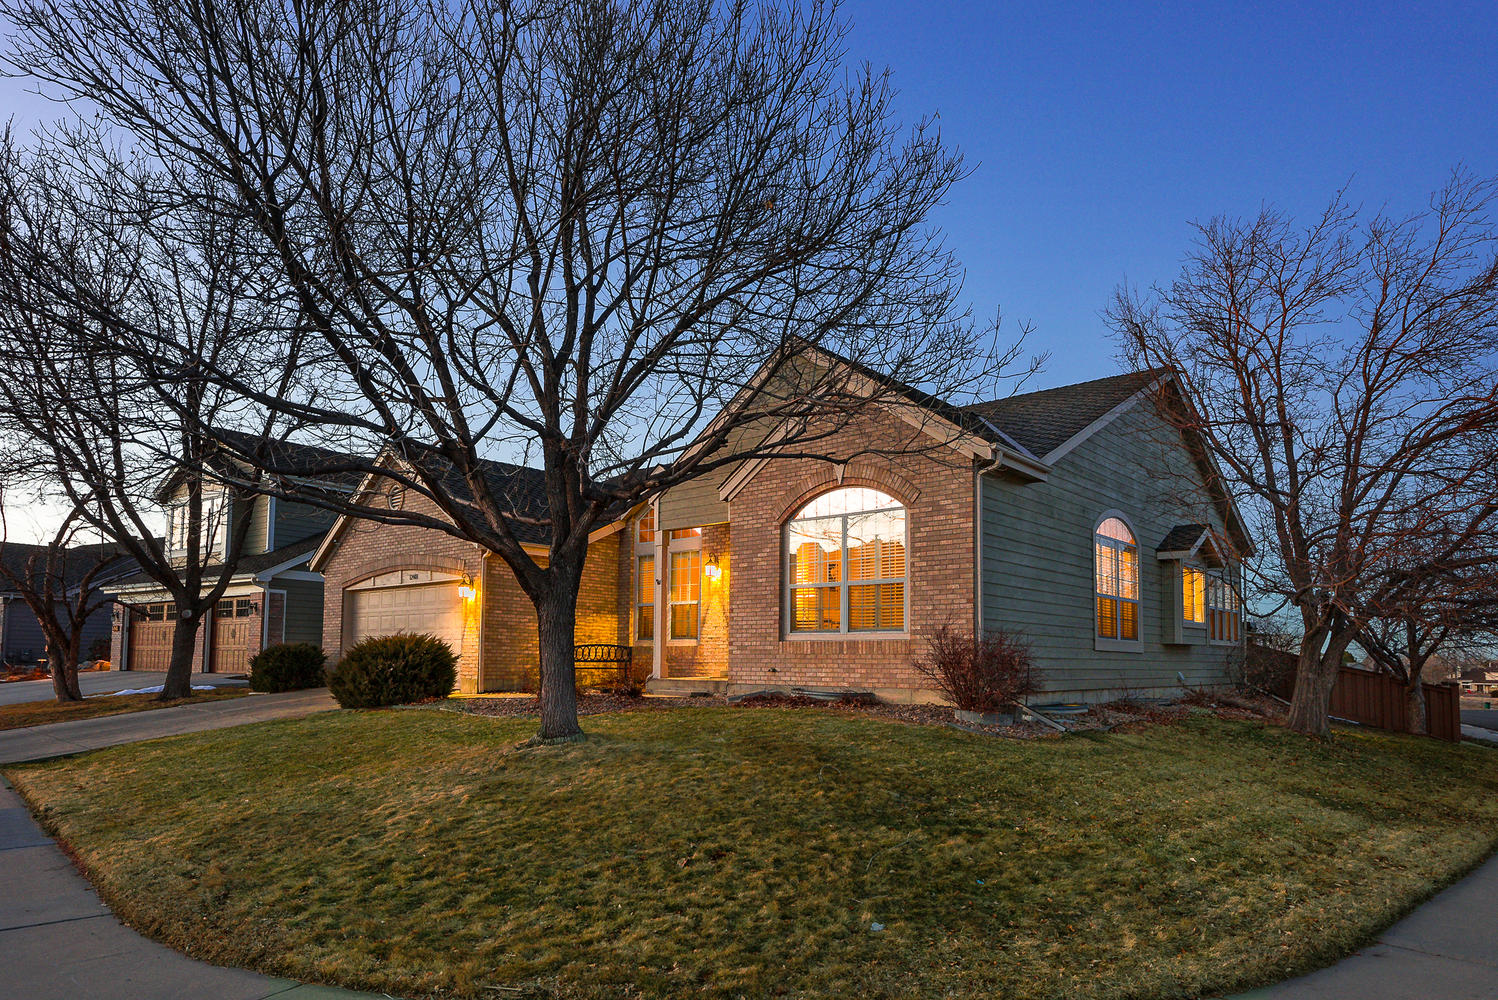 12401 W Fair Dr Littleton CO 80127 listed By Jason Peck